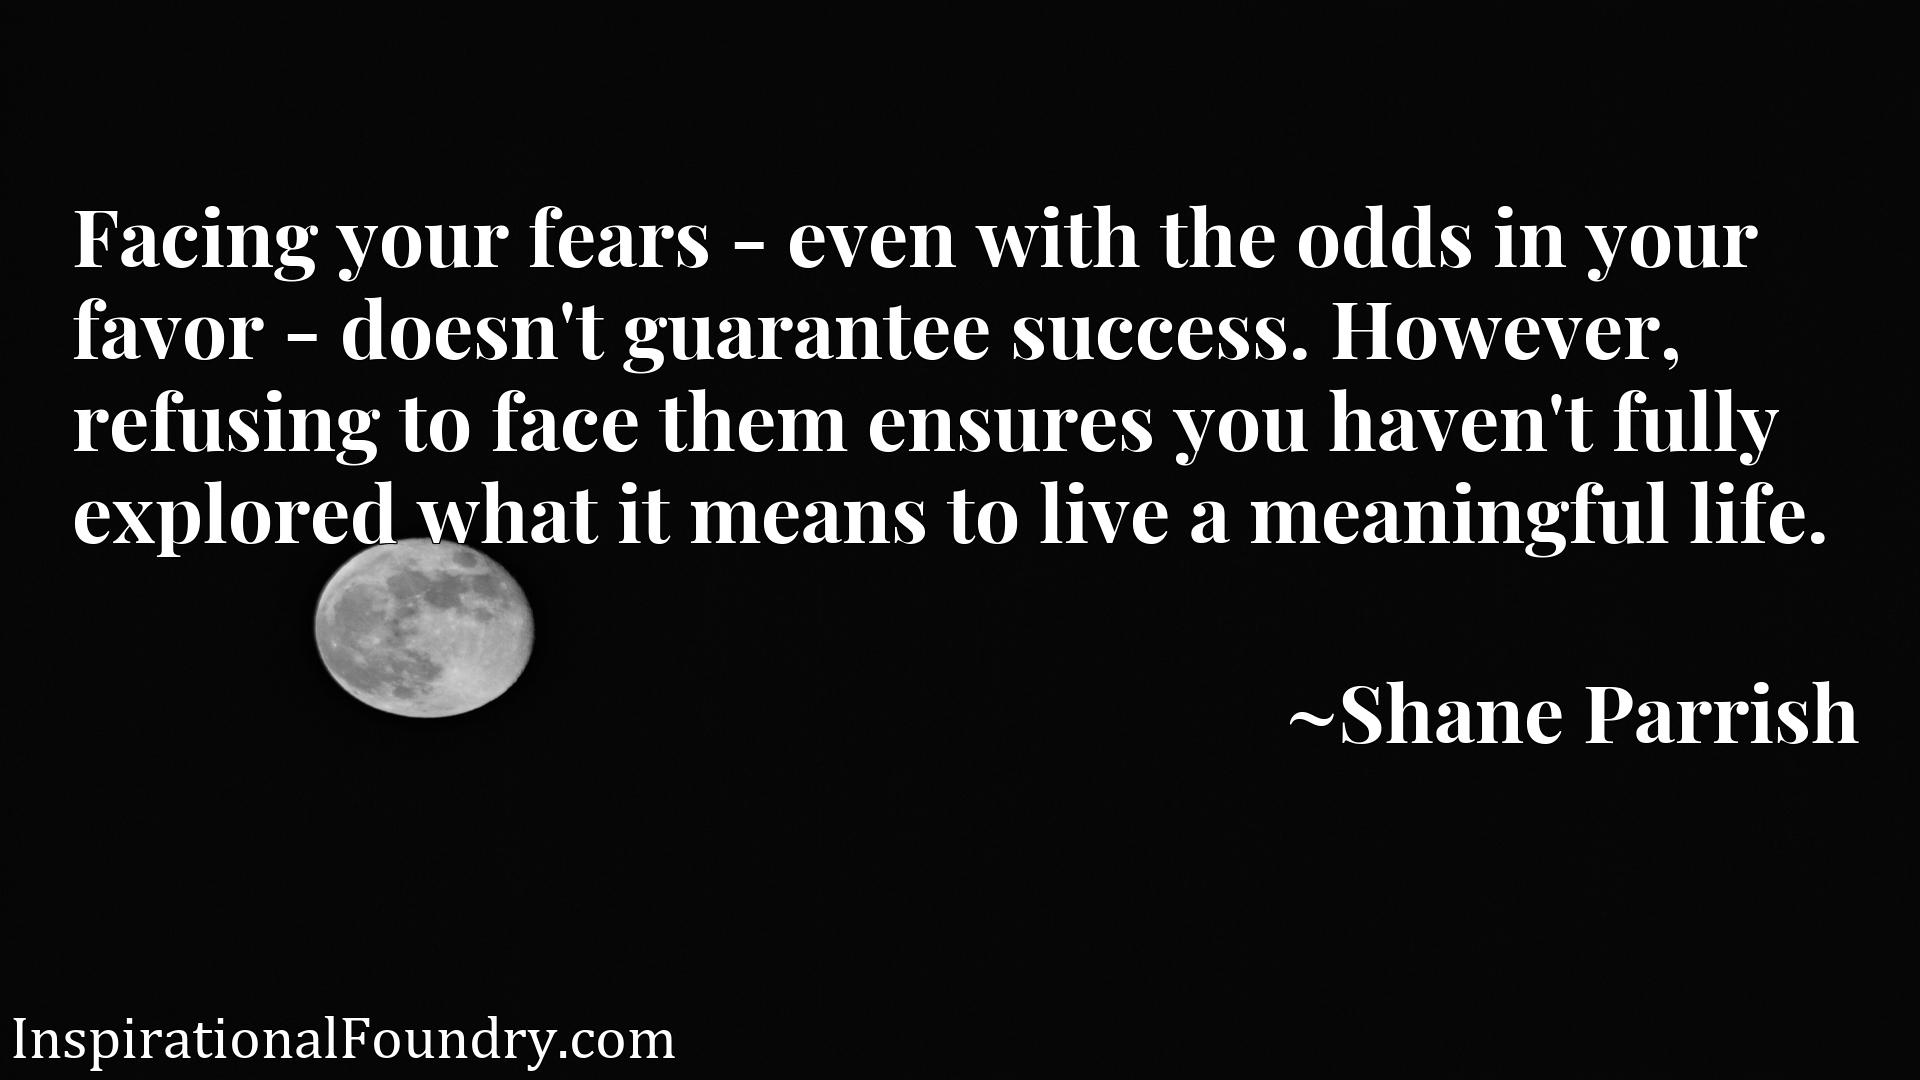 Facing your fears - even with the odds in your favor - doesn't guarantee success. However, refusing to face them ensures you haven't fully explored what it means to live a meaningful life.